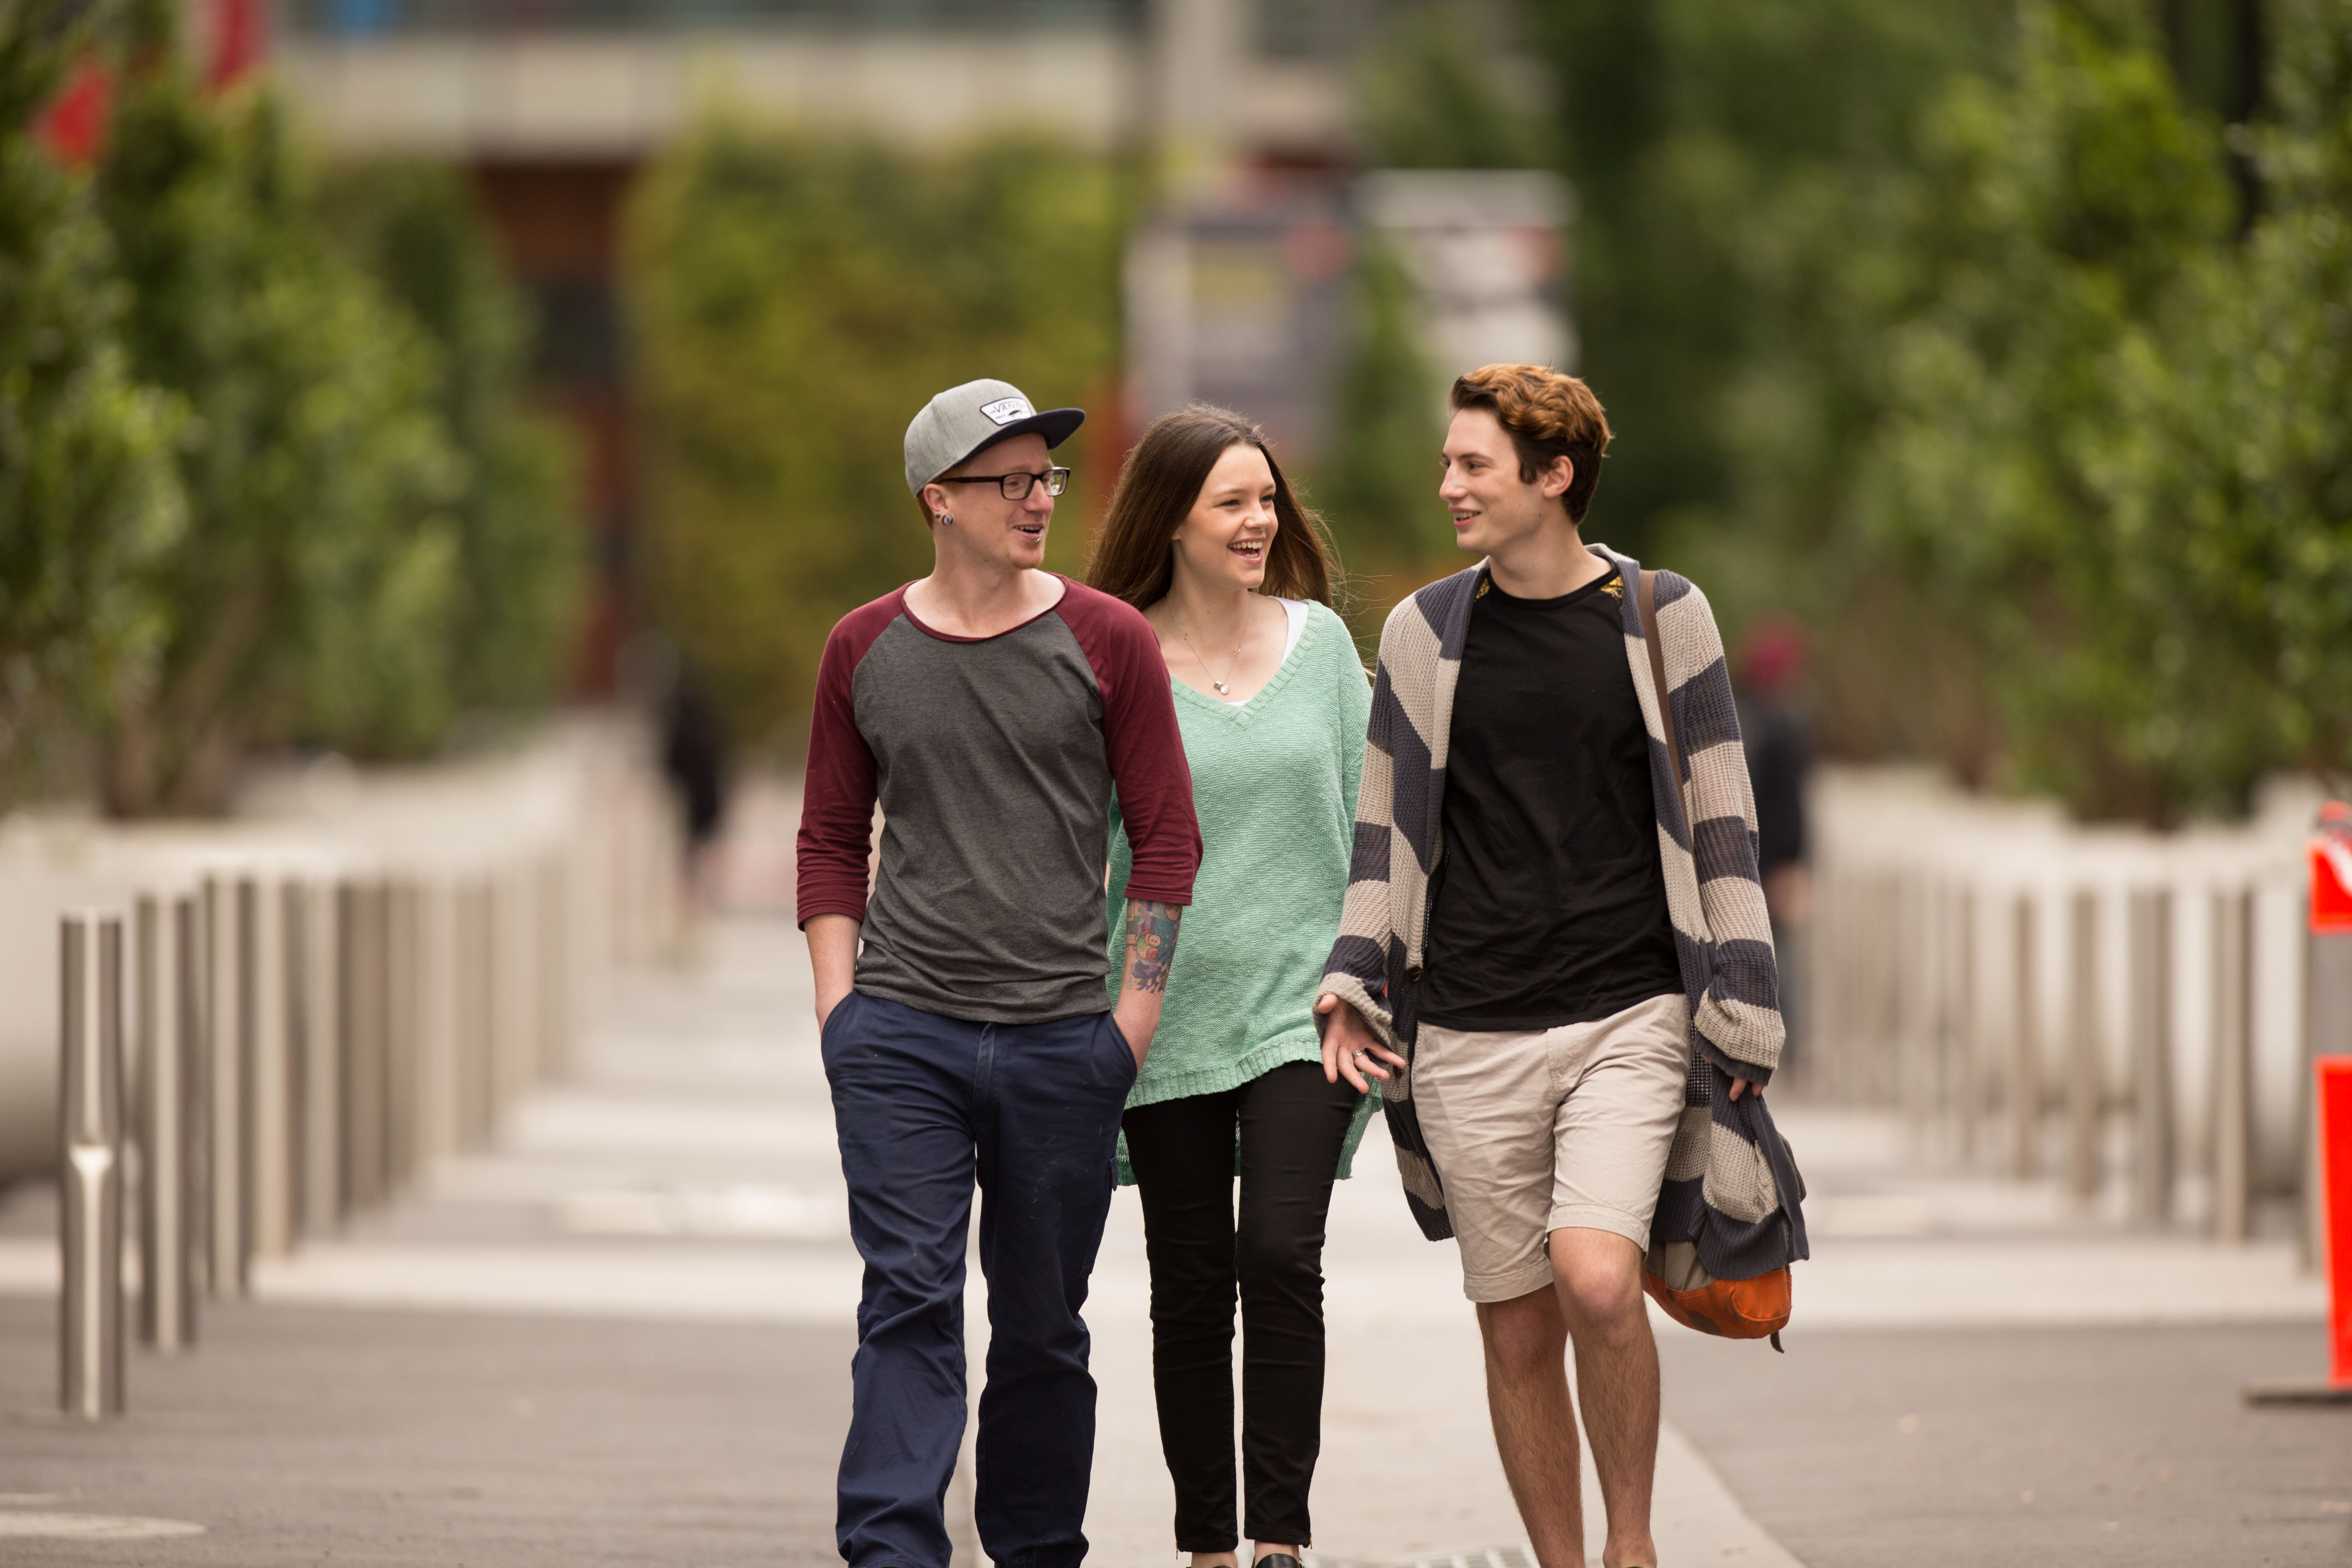 Three undergraduate students walking to class at Hawthorn campus